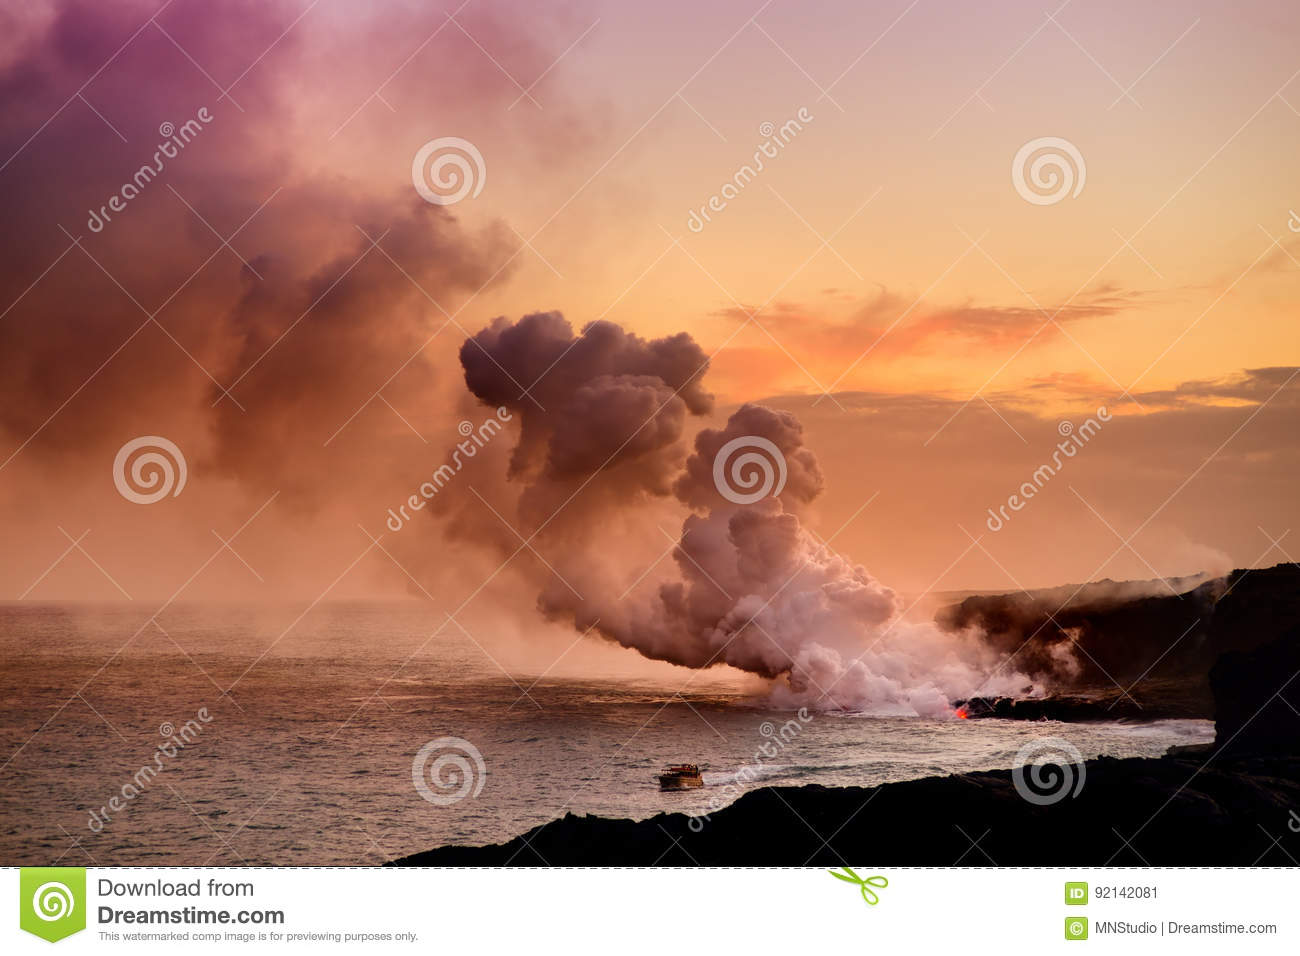 Lava pouring into the ocean creating a huge poisonous plume of smoke at Hawaii`s Kilauea Volcano, Big Island of Hawaii